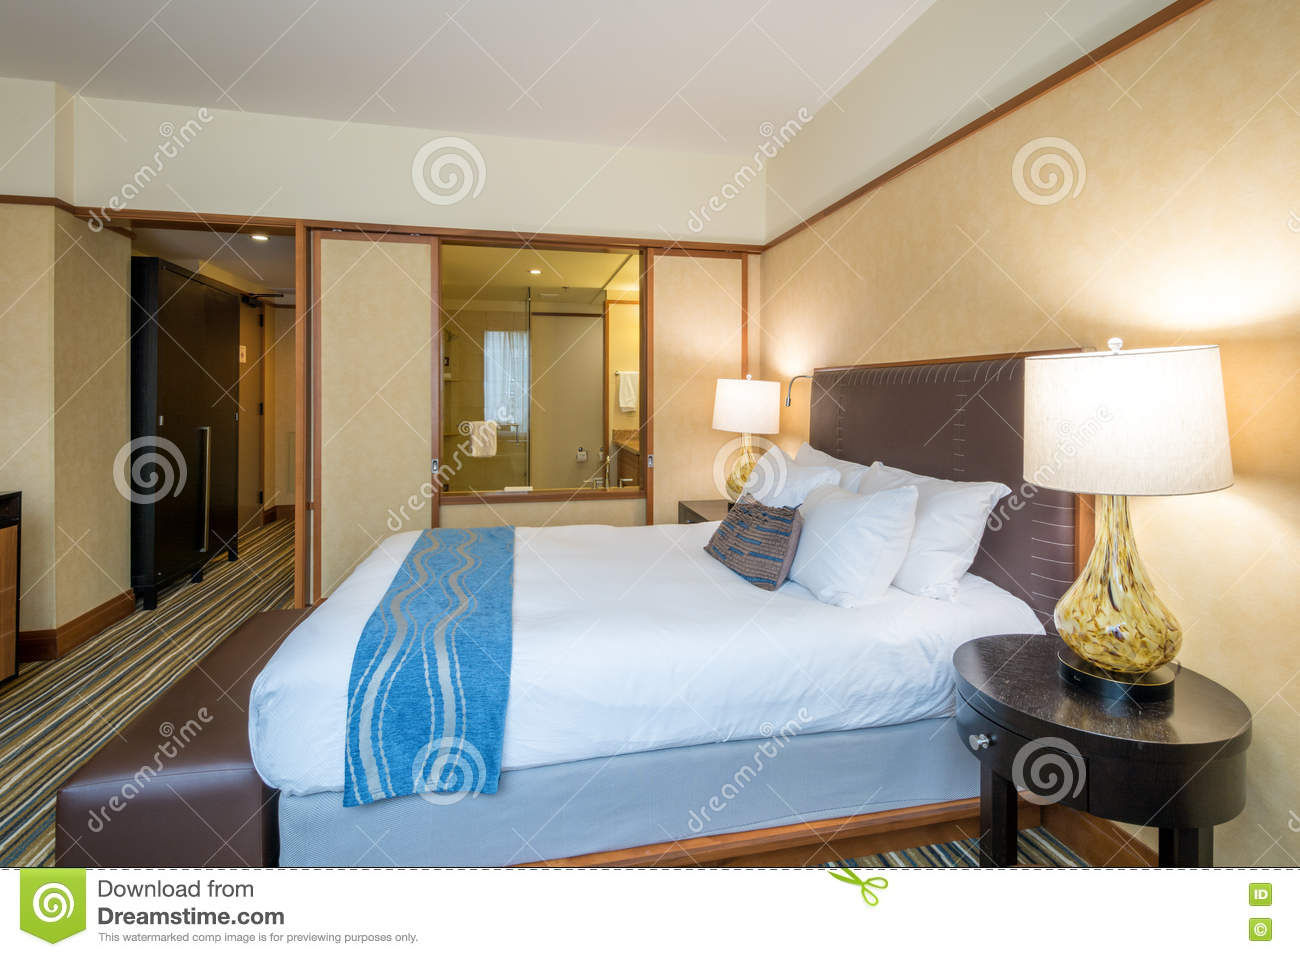 . Modern Master Bedroom In A Hotel Stock Photo   Image of lifestyle